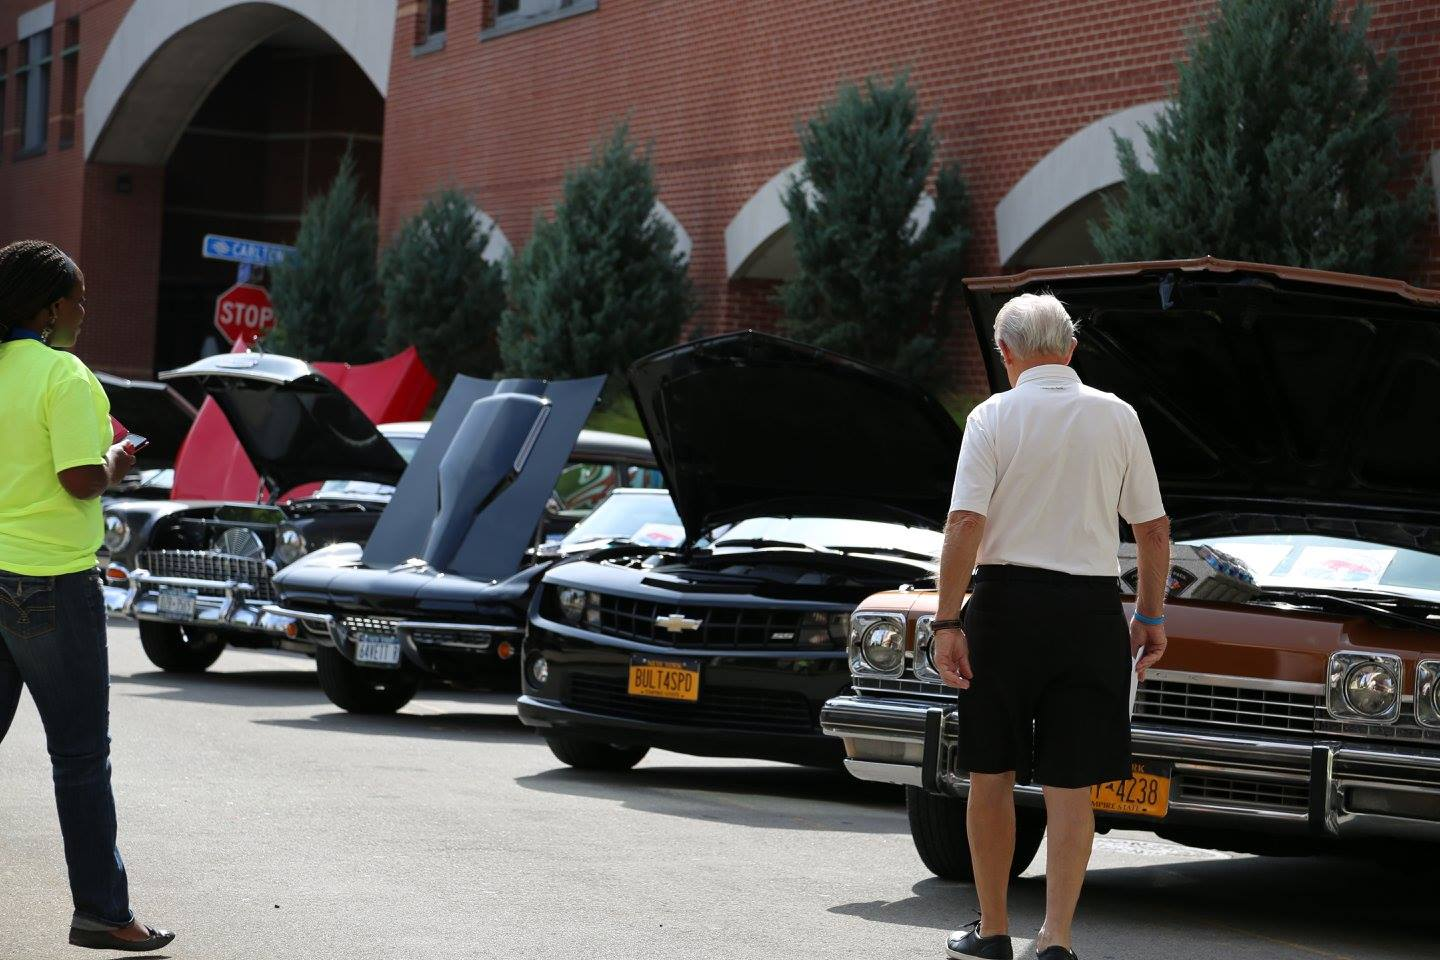 Congratulations to the men who took charge of their prostate health at the 2015 Cruisin' for a Cure.  Special thanks to everyone who made the event possible and to all who brought their classic cars!